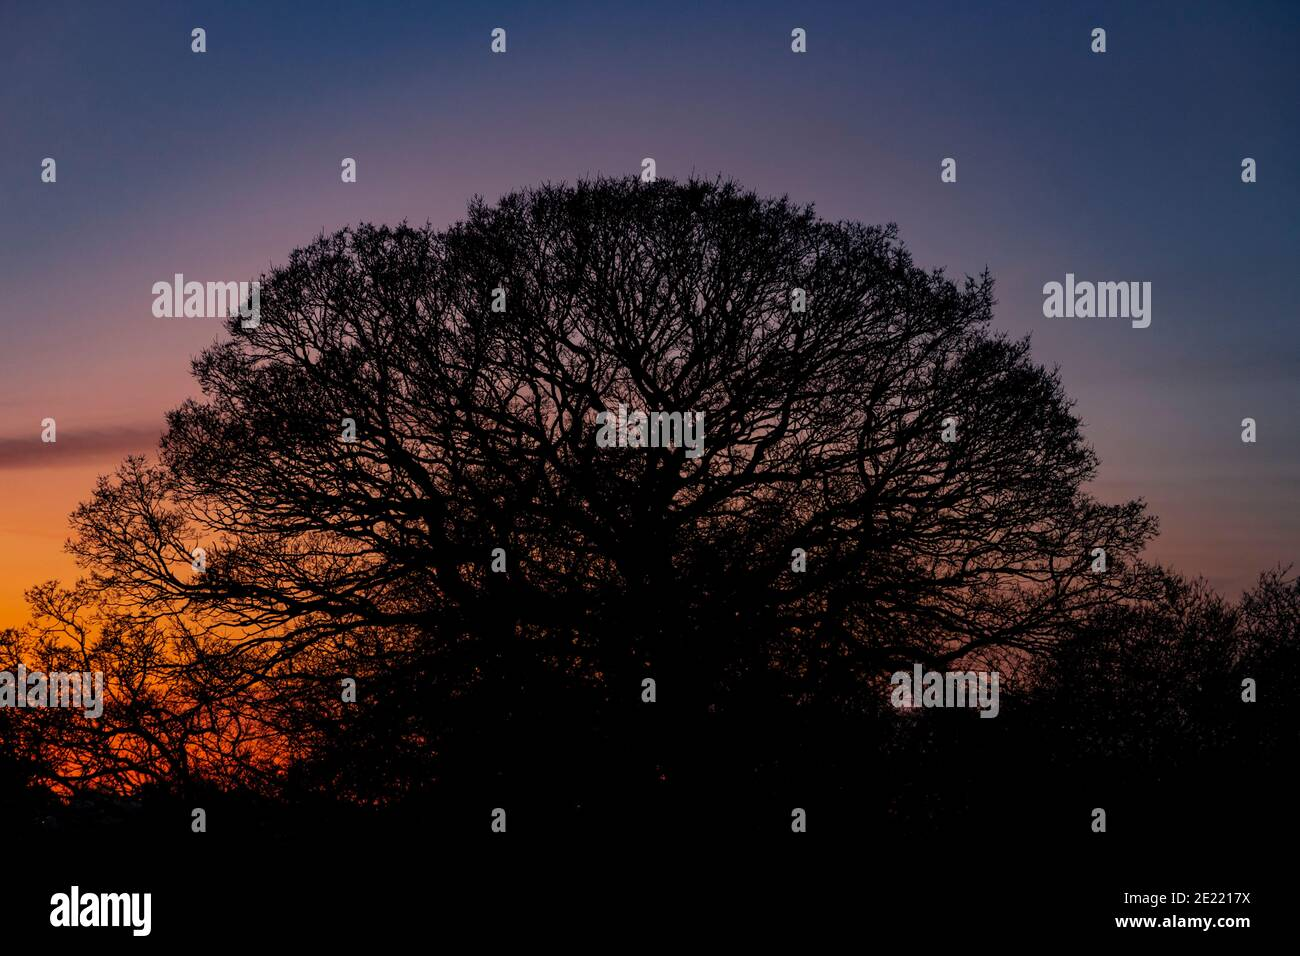 Oak tree in silhouette at dusk Stock Photo